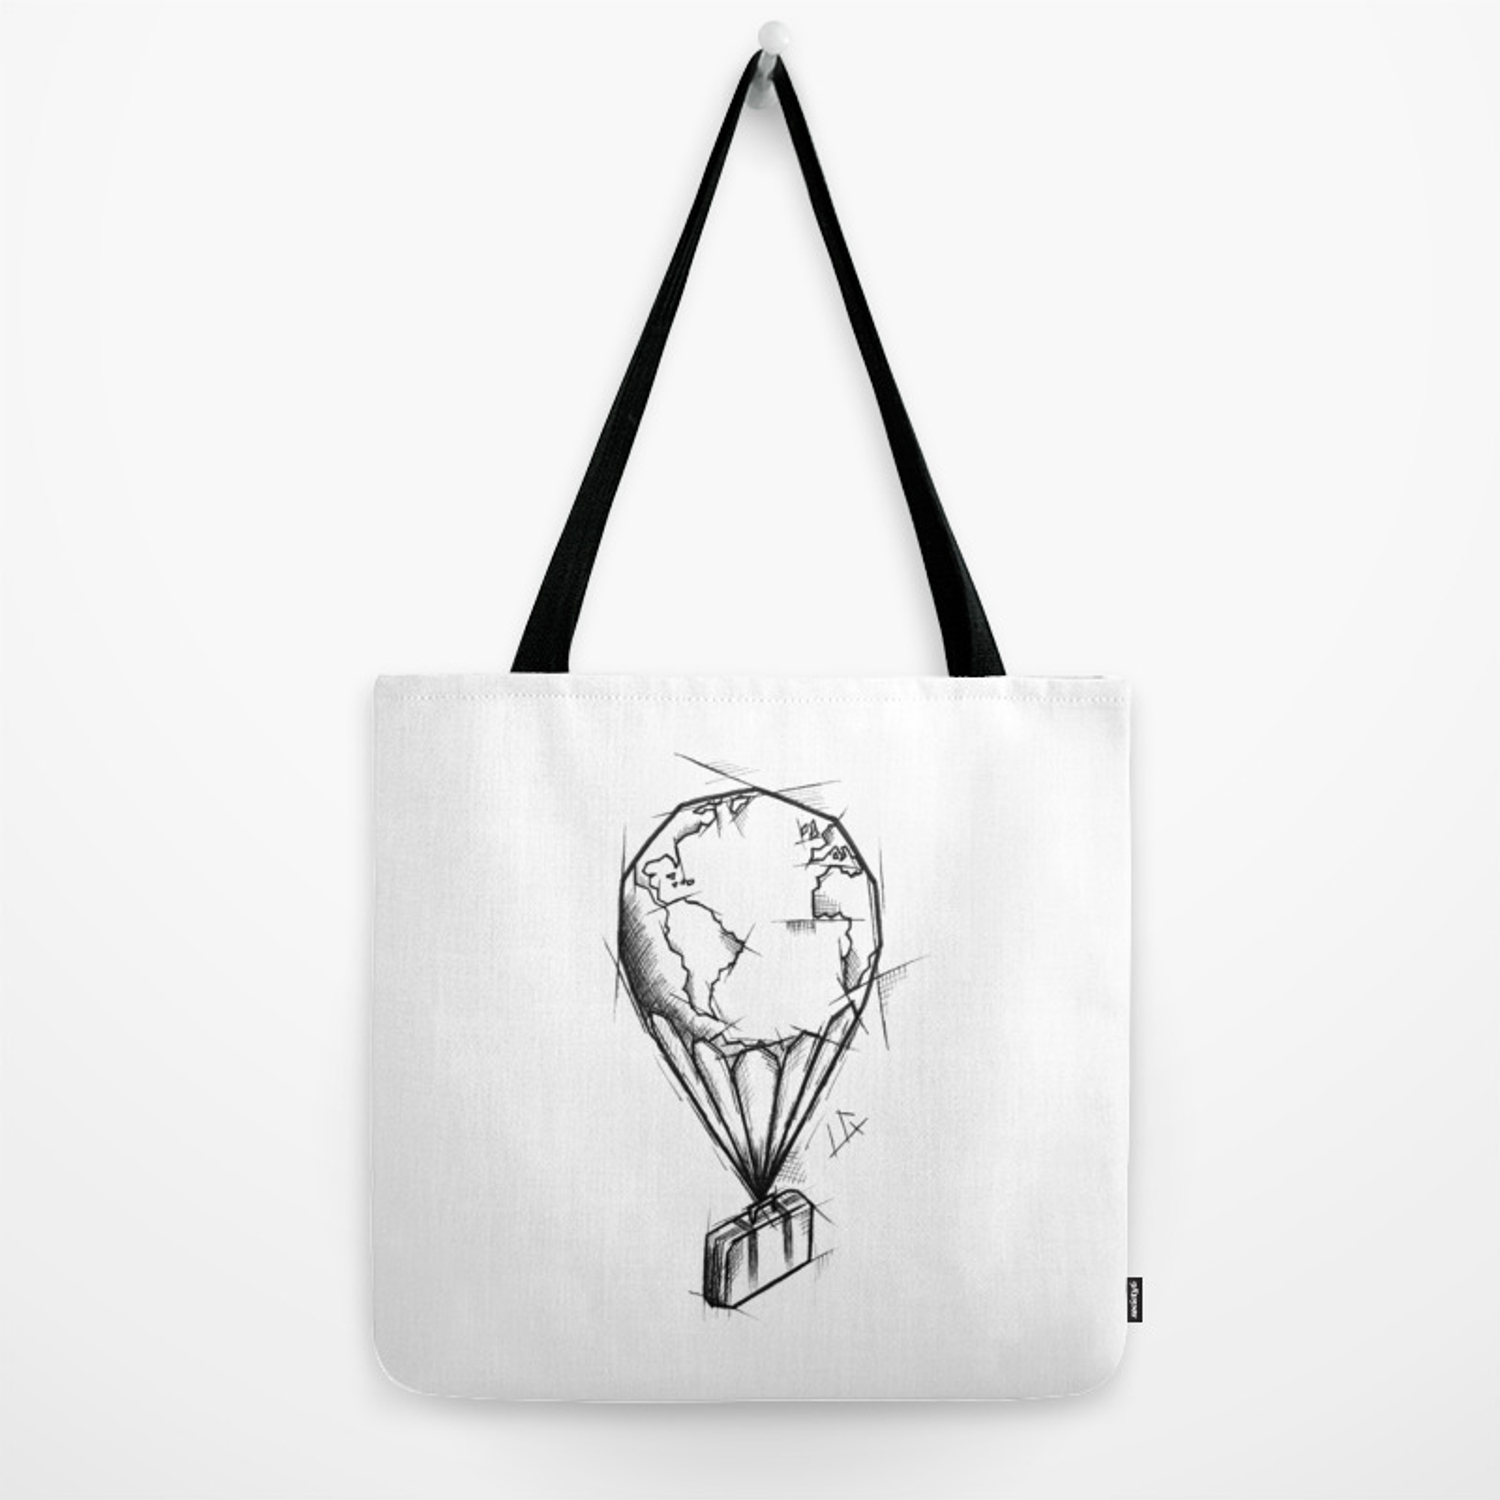 1500x1500 Balloon Handmade Drawing, Made In Pencil, Charcoal And Ink, Tattoo